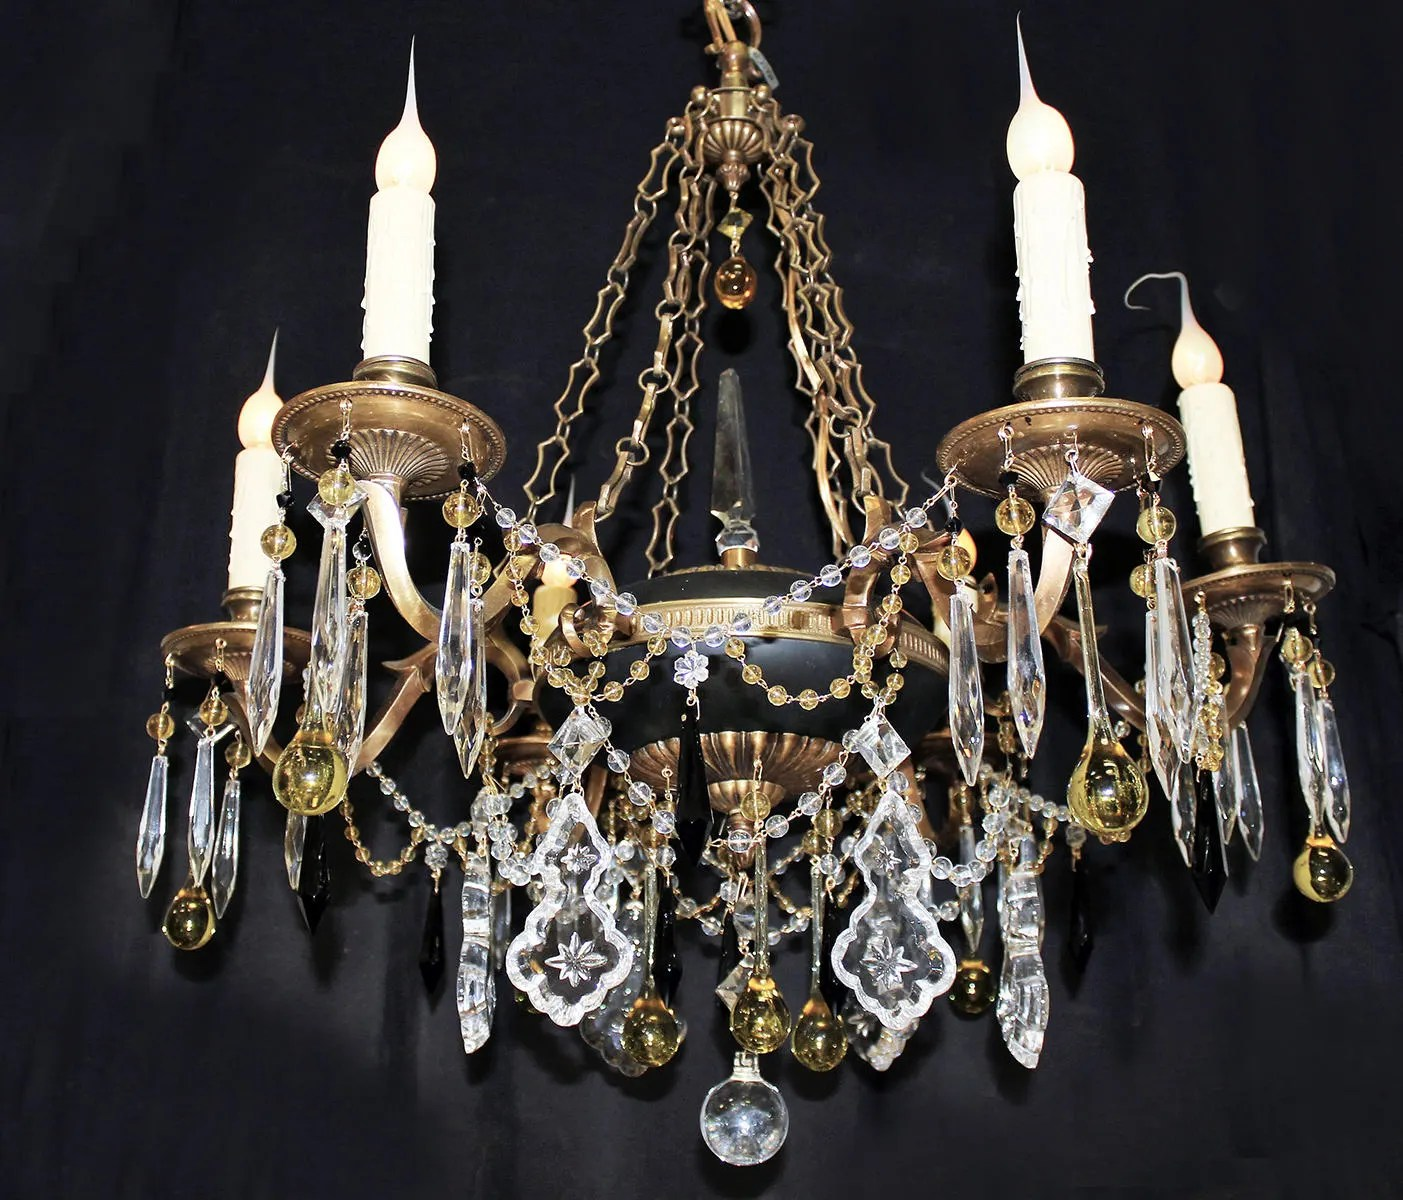 Spanish Chandelier Chandeliers Lighting Elegant 25x 27 Vintage 6 Light Spanish